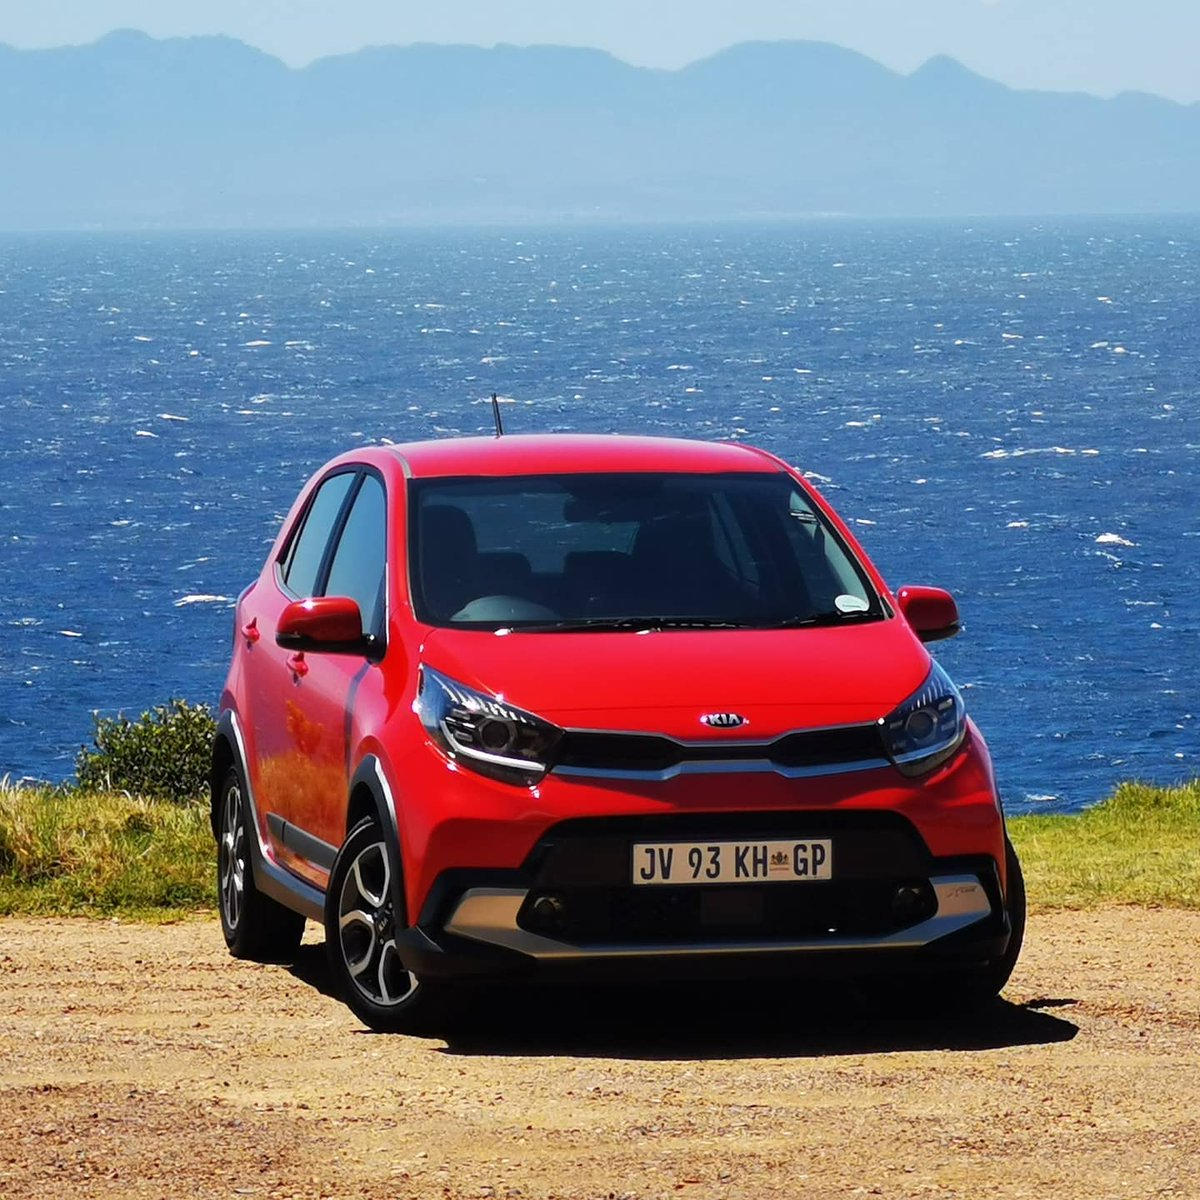 Prices for @KiaSouthAfrica's new Picanto X-Line are in: R237 995 for the manual and R251 995 for the automatic.